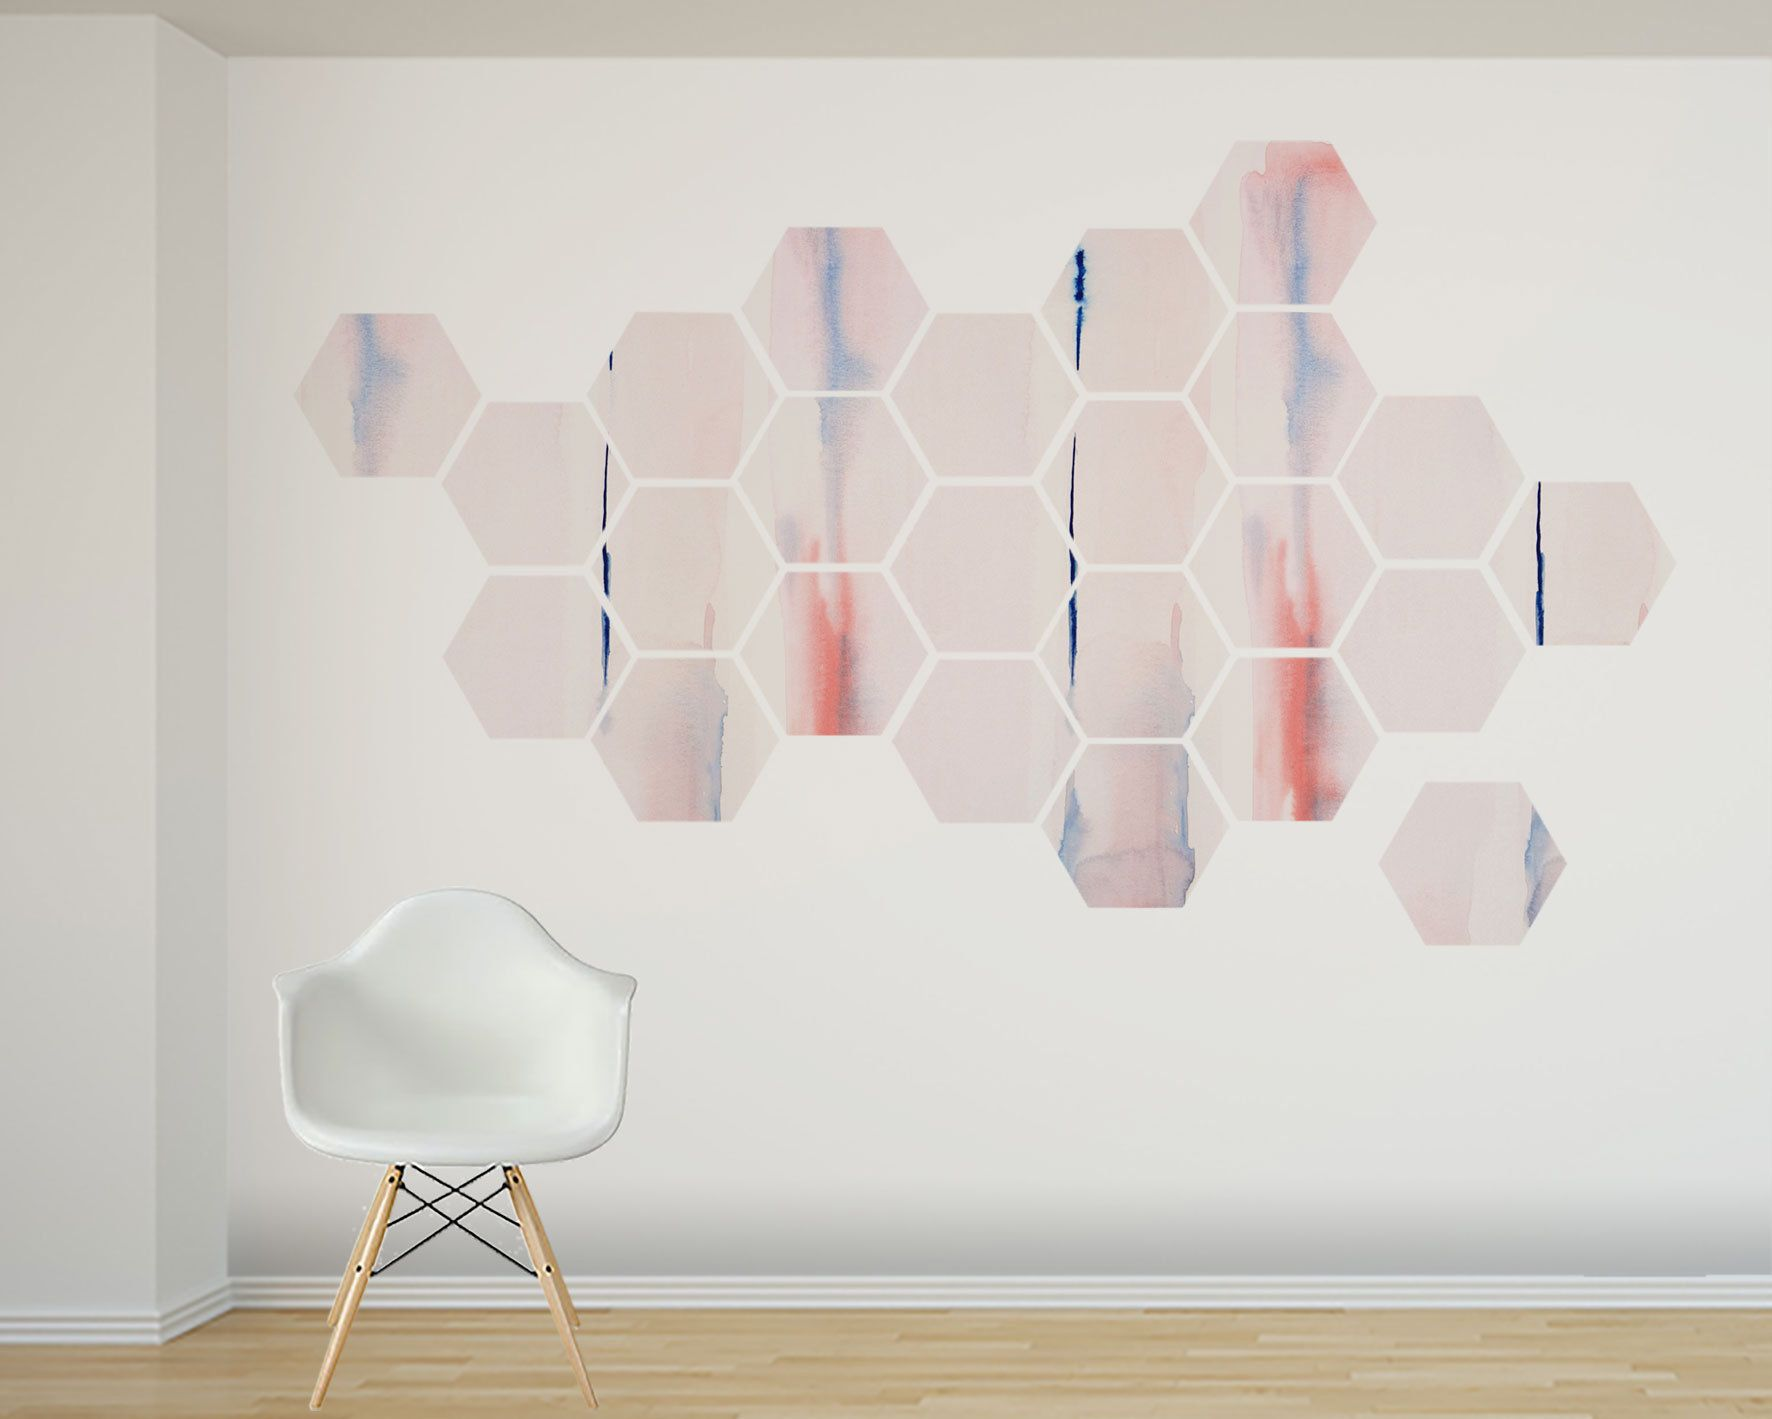 Blush Pink Watercolor Wall Decal 24 Removable Hexagon Shapes